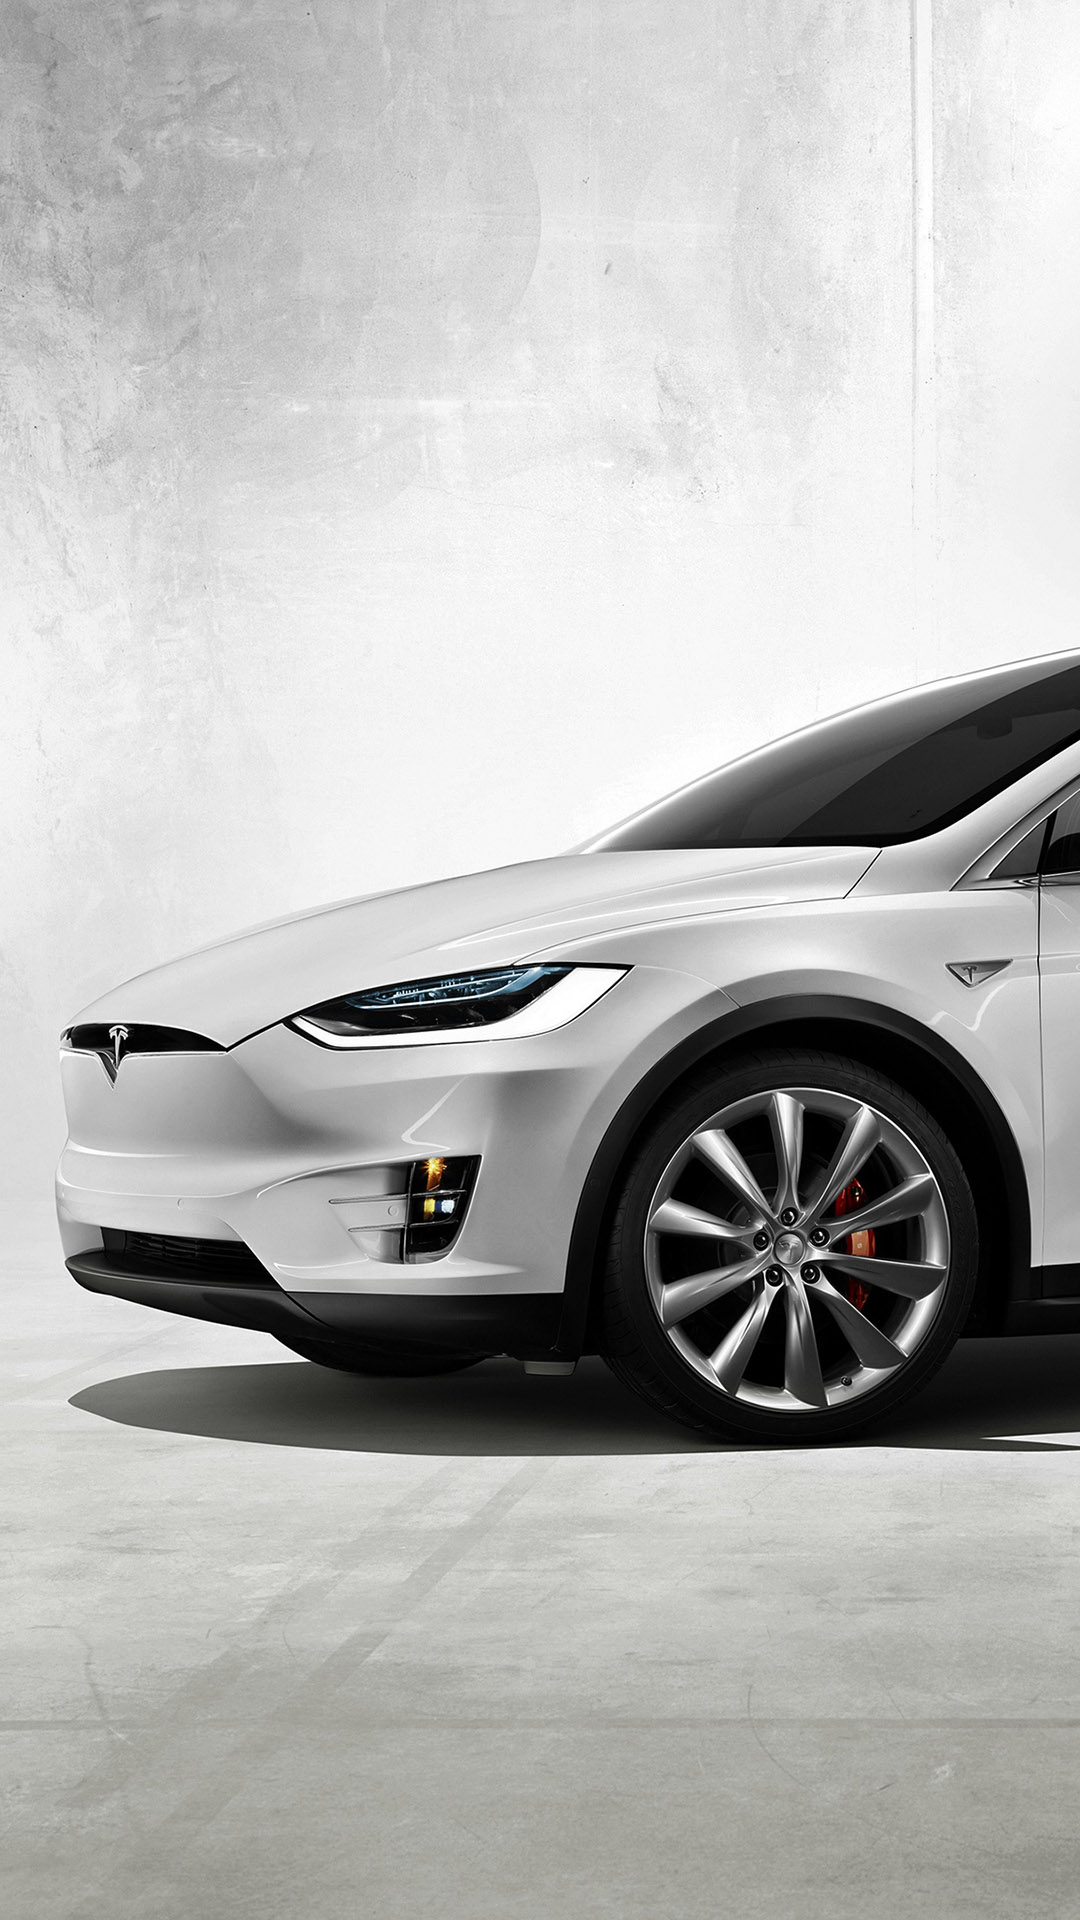 iPhone wallpaper White Tesla Model X 3Wallpapers : notre sélection de fonds d'écran du 13/02/2018